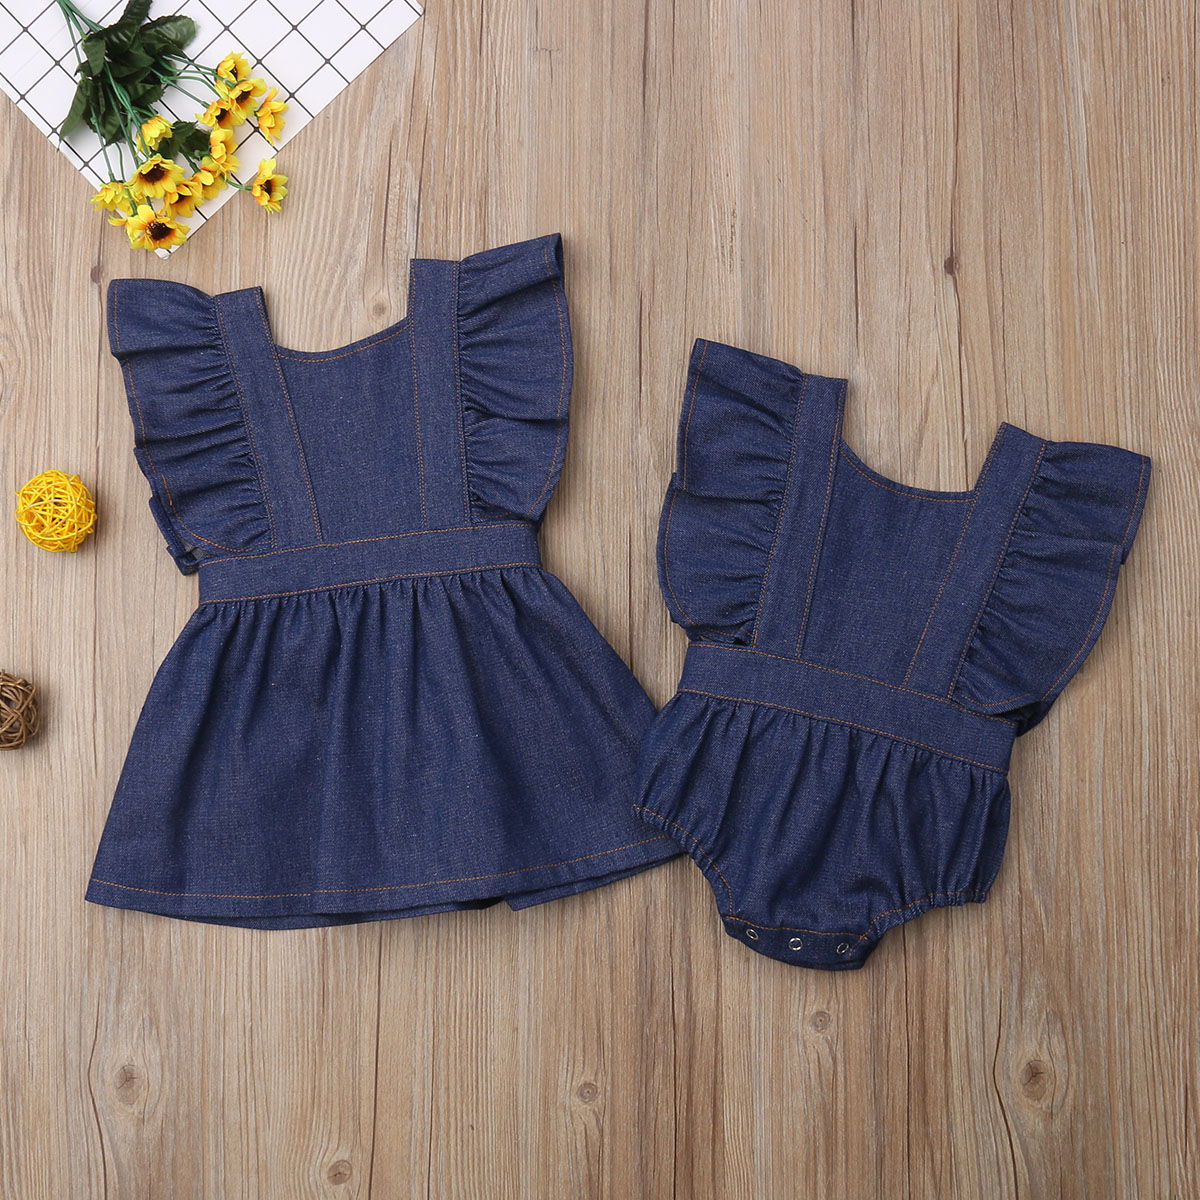 Sister Matching Denim Backless Romper Dress